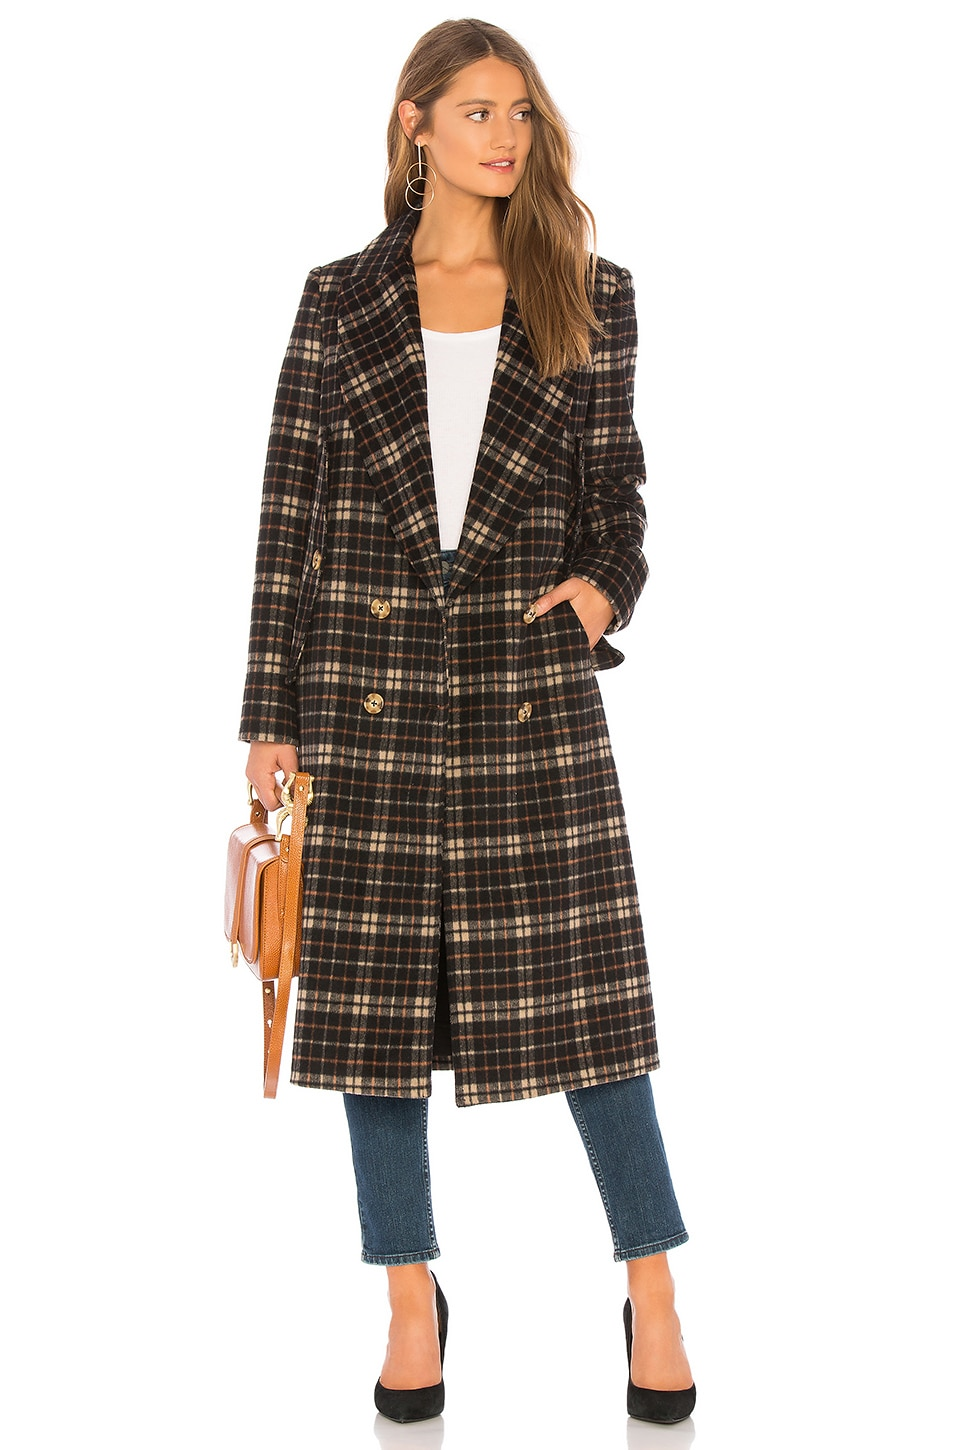 C/MEO Magnets Coat in Black Check